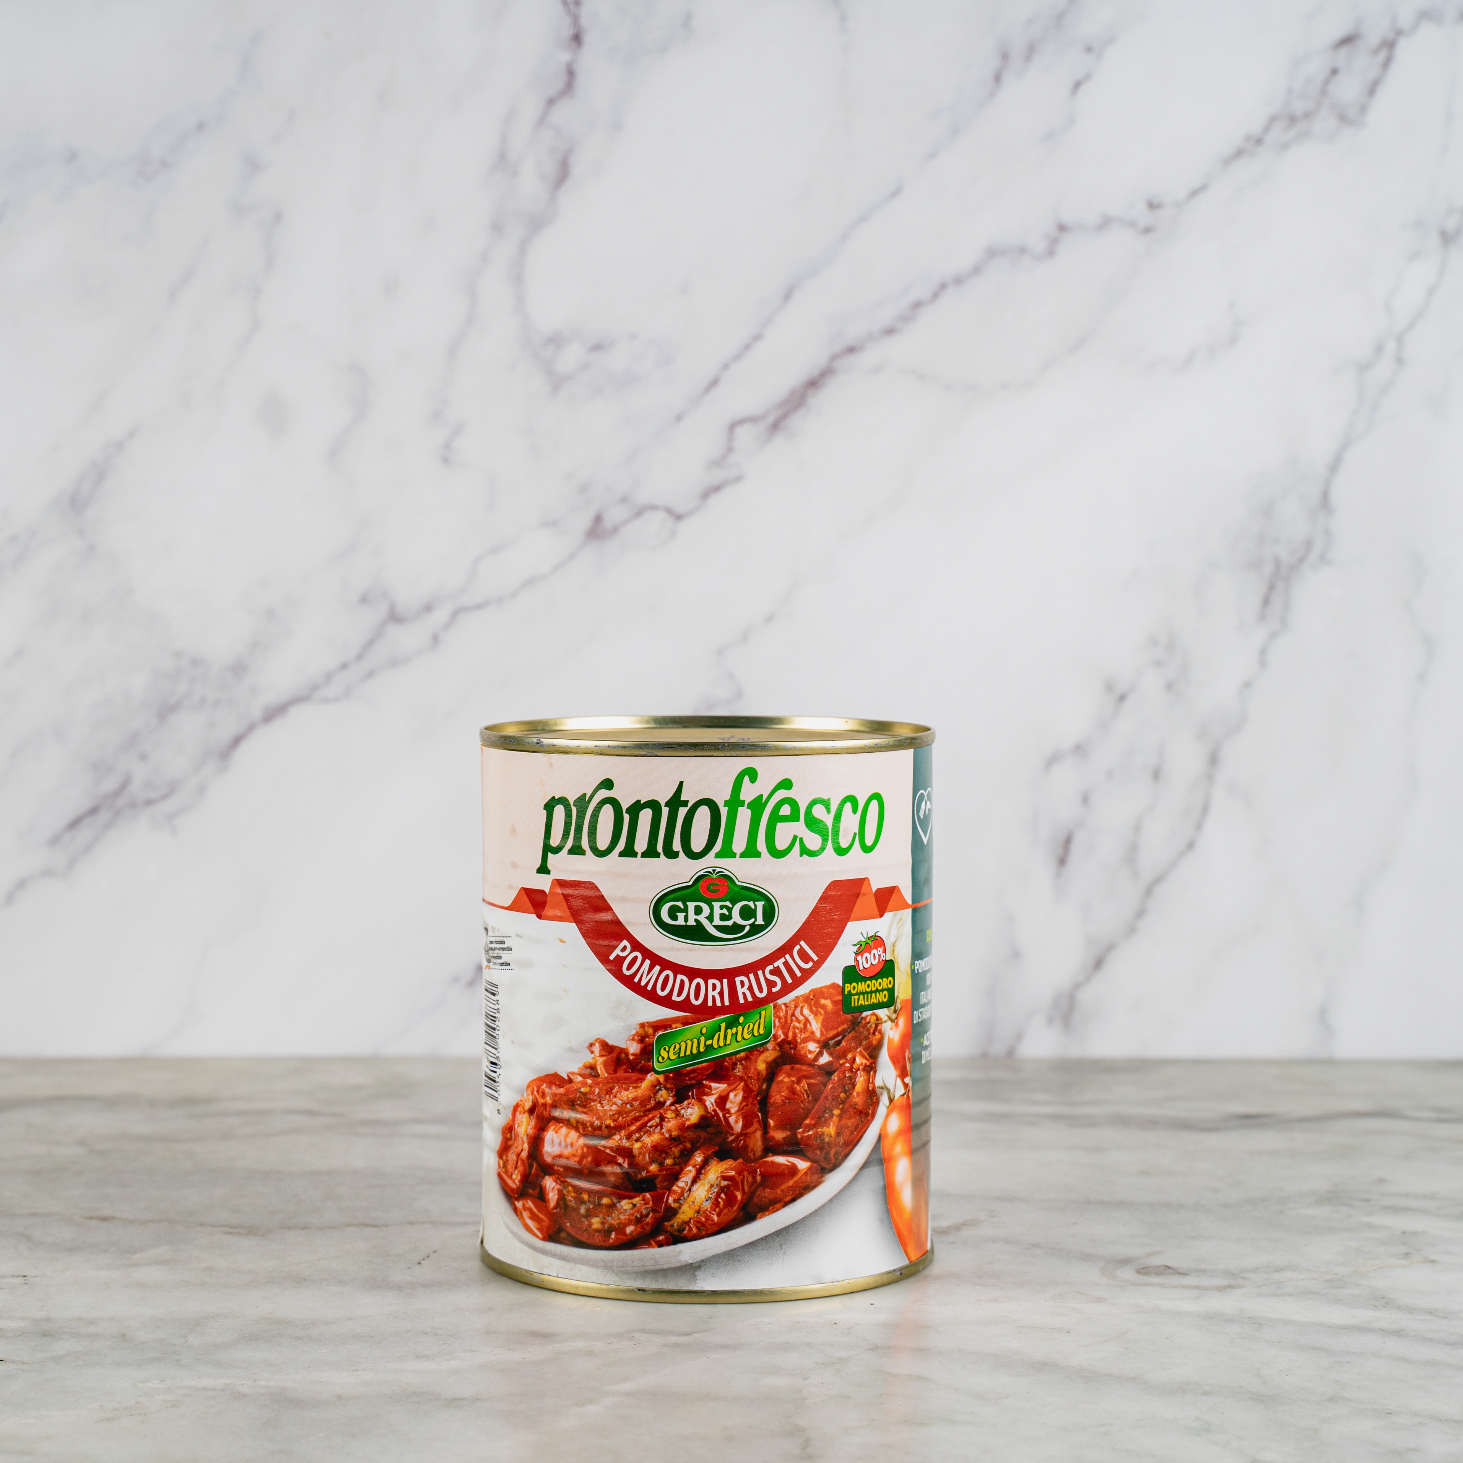 Greci-Pronto Fresco Semi-Dried Tomatoes